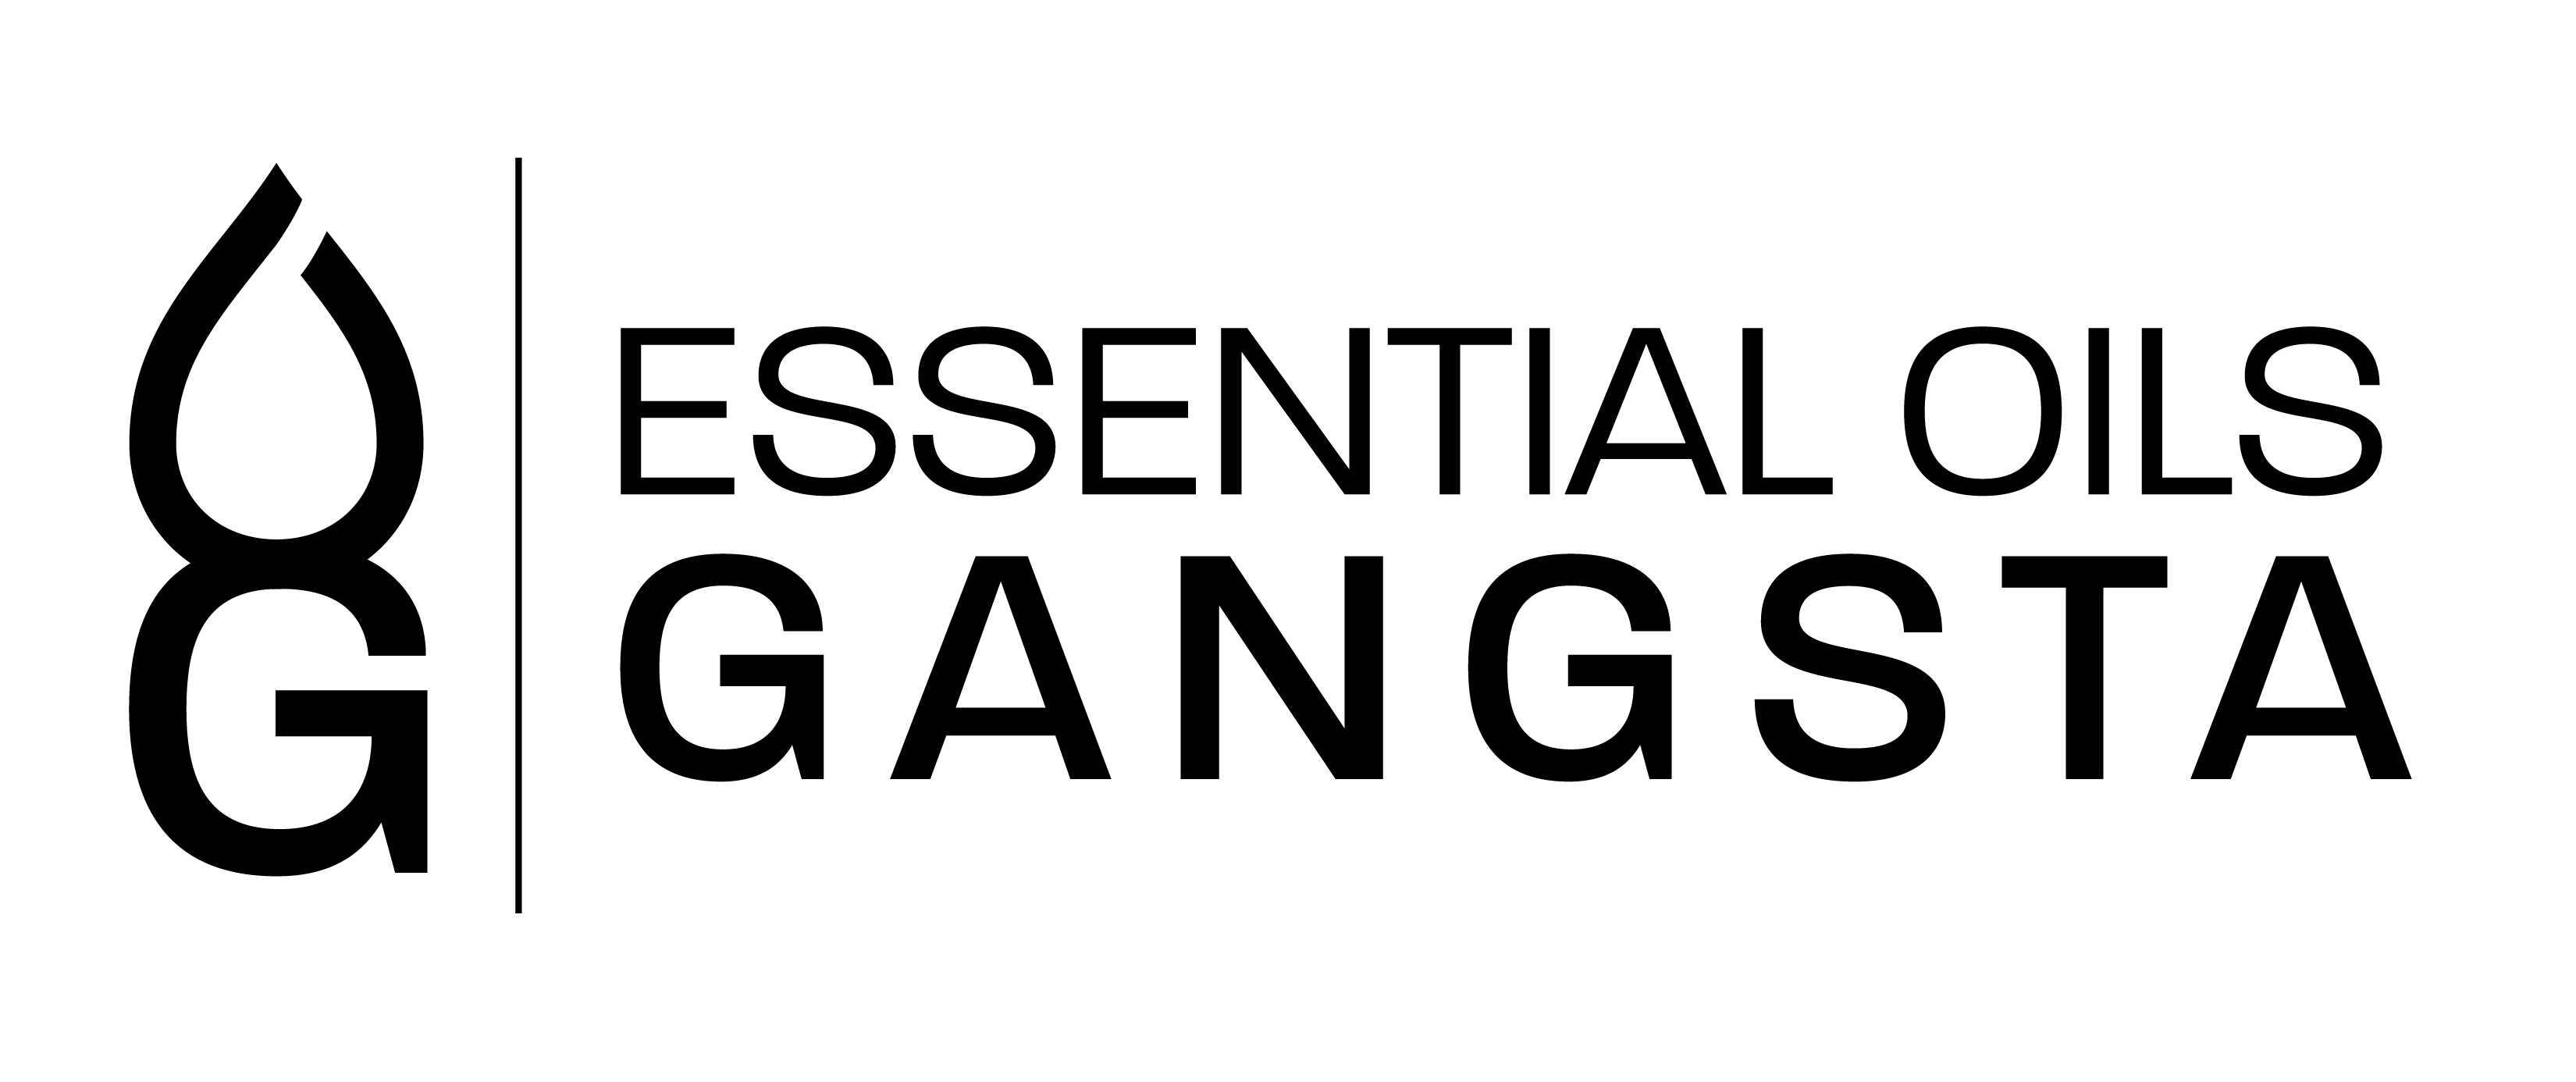 59672763793251514 also Essential Oils Info together with 128634133078354095 further Doterra Wholesale Price List 2017 further Essential Oils Gangsta Logos final 01. on doterra benefits